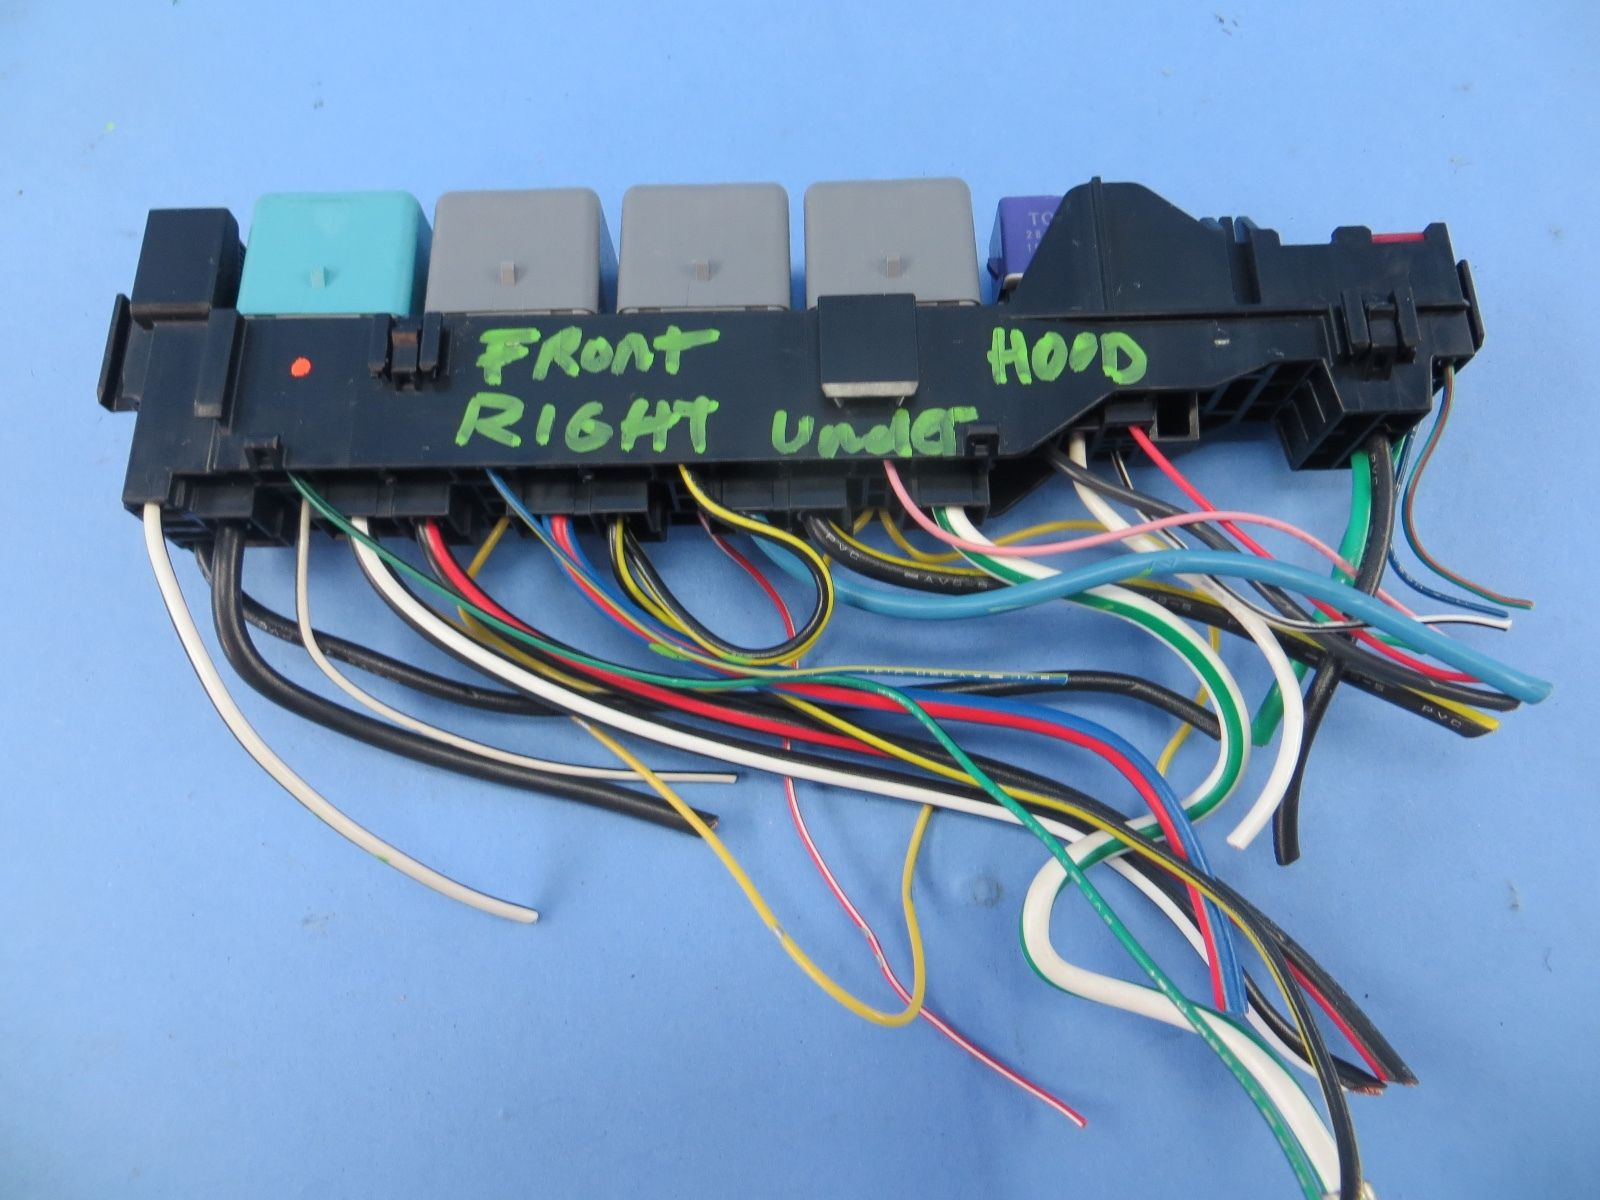 2010 2013 Lexus Is250 Is350 Engine Bay Relay Fuse Block Box 82740 Gs350 30340 Is